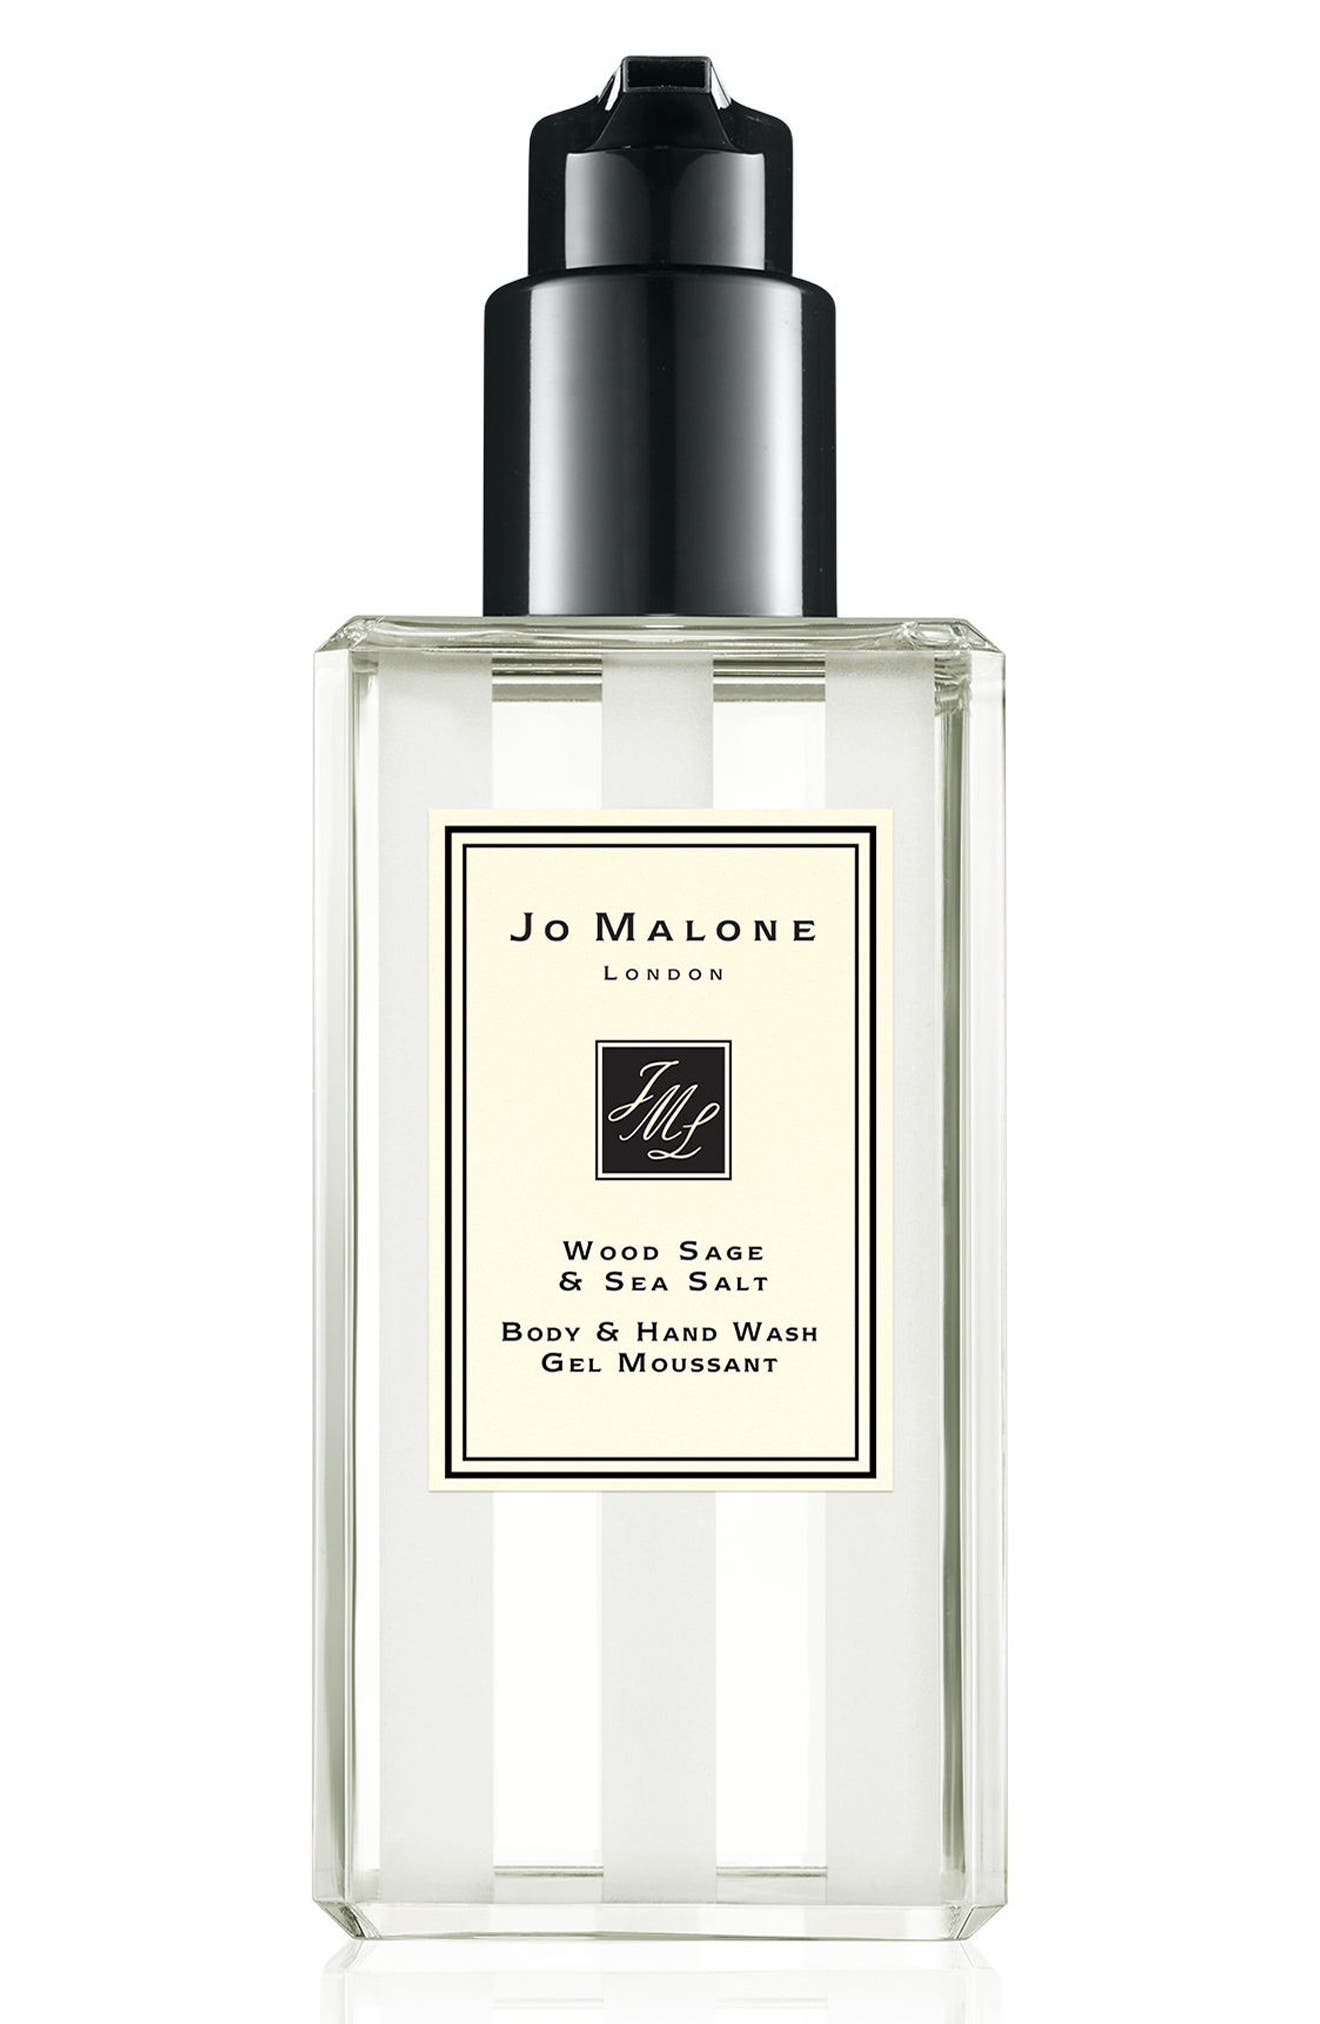 Jo Malone London™ 'Wood Sage & Sea Salt' Body & Hand Wash